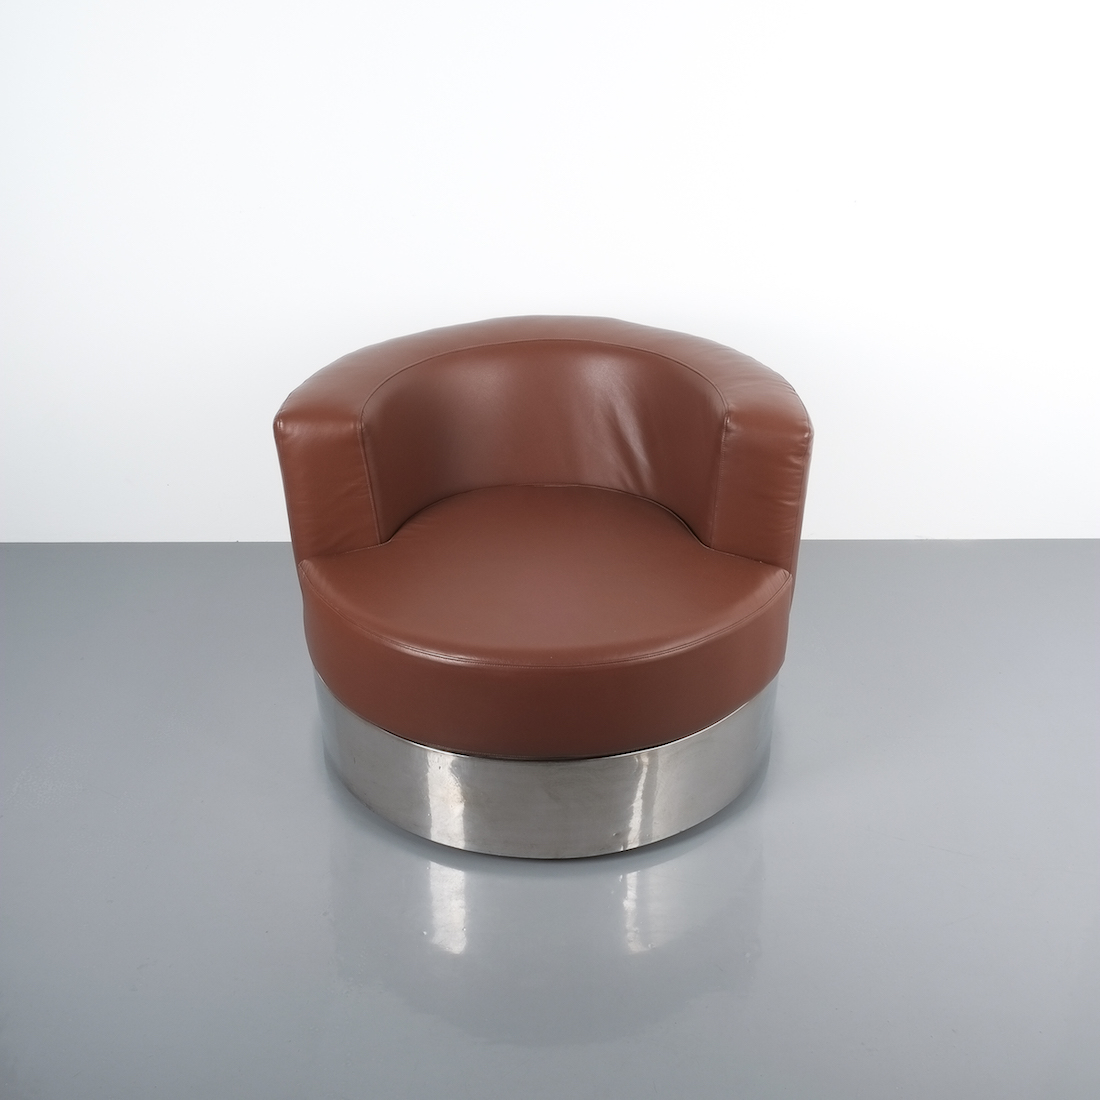 Franco Fraschini Brown Leather Chair For Driade Italy 1965